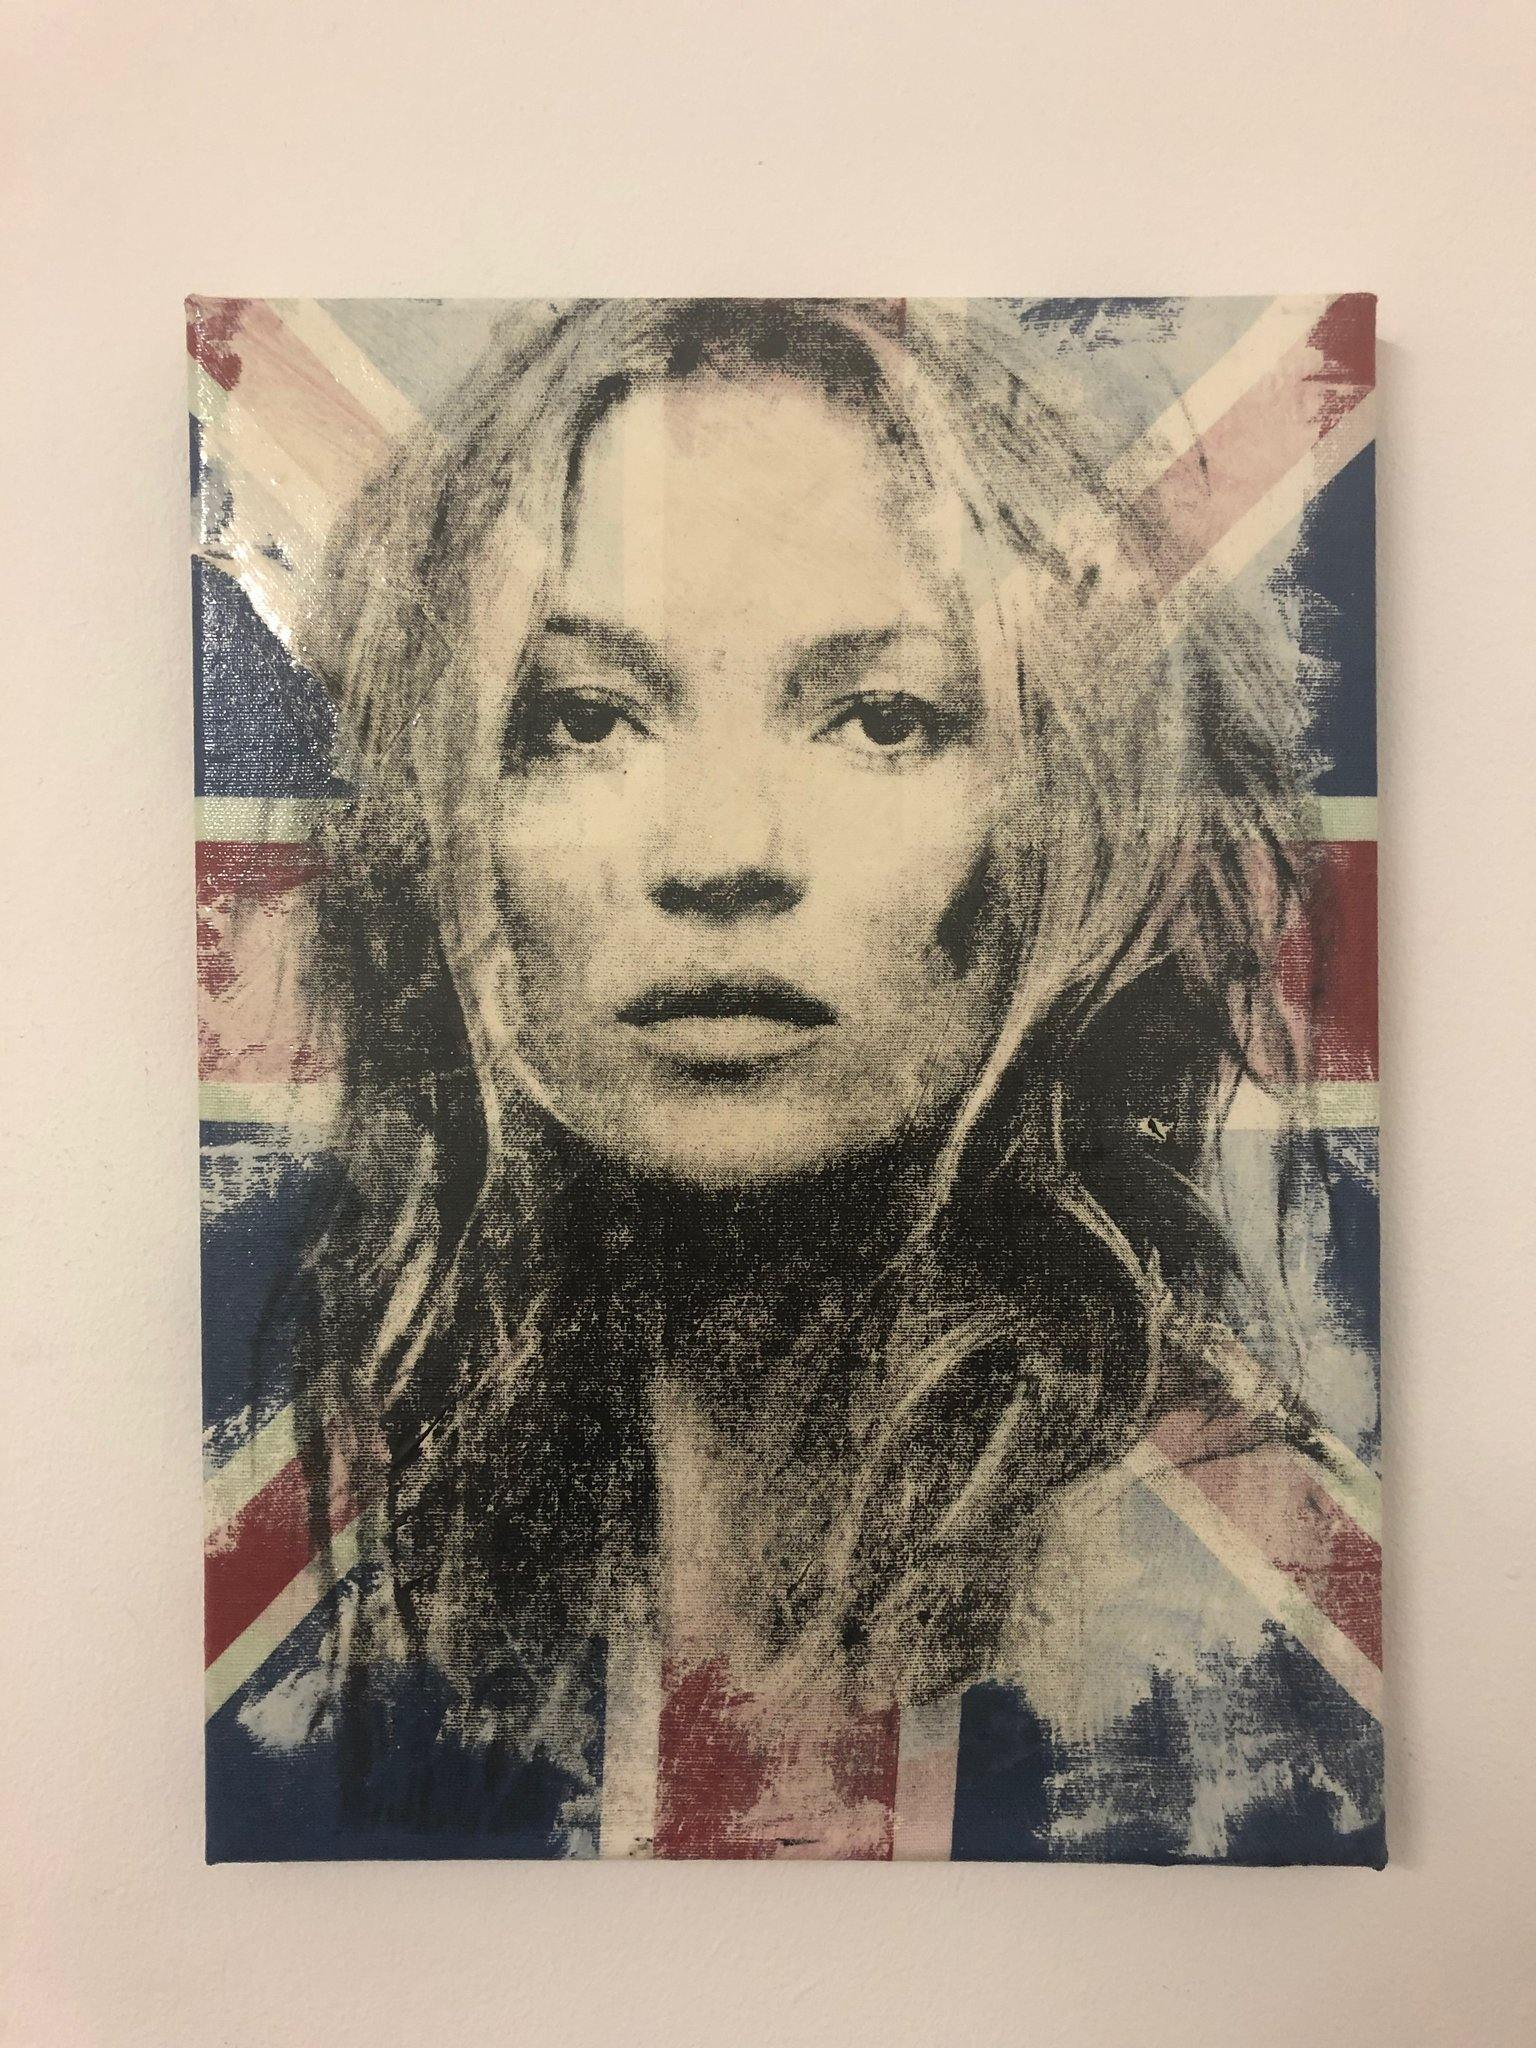 Brit Pop Kate by Barrie J Davies 2019, mixed media on canvas, unframed, 30cm x 40cm. Barrie J Davies is an Artist - Pop Art and Street art inspired Artist based in Brighton England UK - Pop Art Paintings, Street Art Prints & Editions available